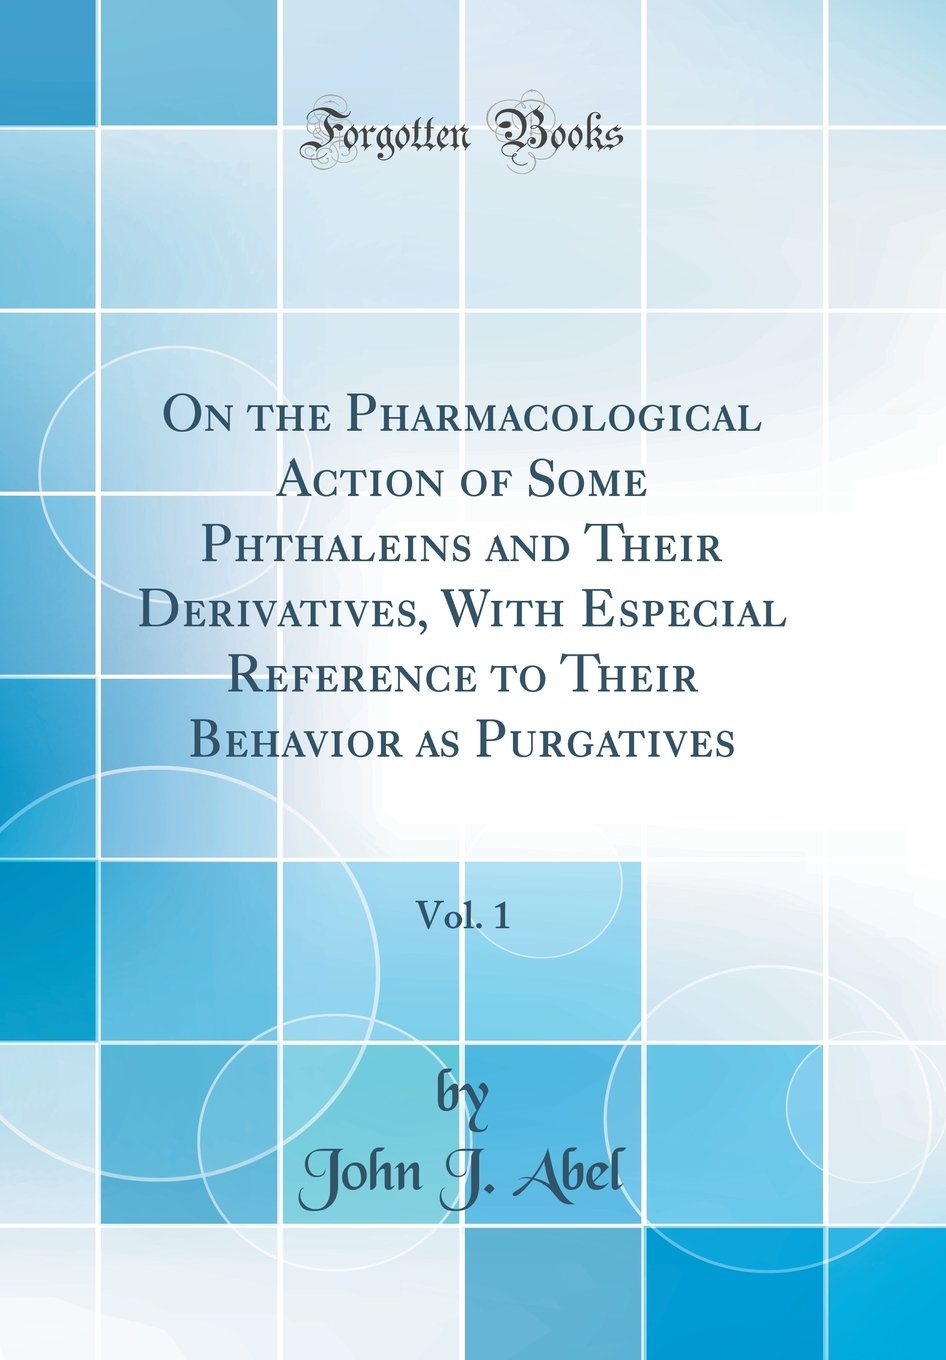 Download On the Pharmacological Action of Some Phthaleins and Their Derivatives, with Especial Reference to Their Behavior as Purgatives, Vol. 1 (Classic Reprint) pdf epub